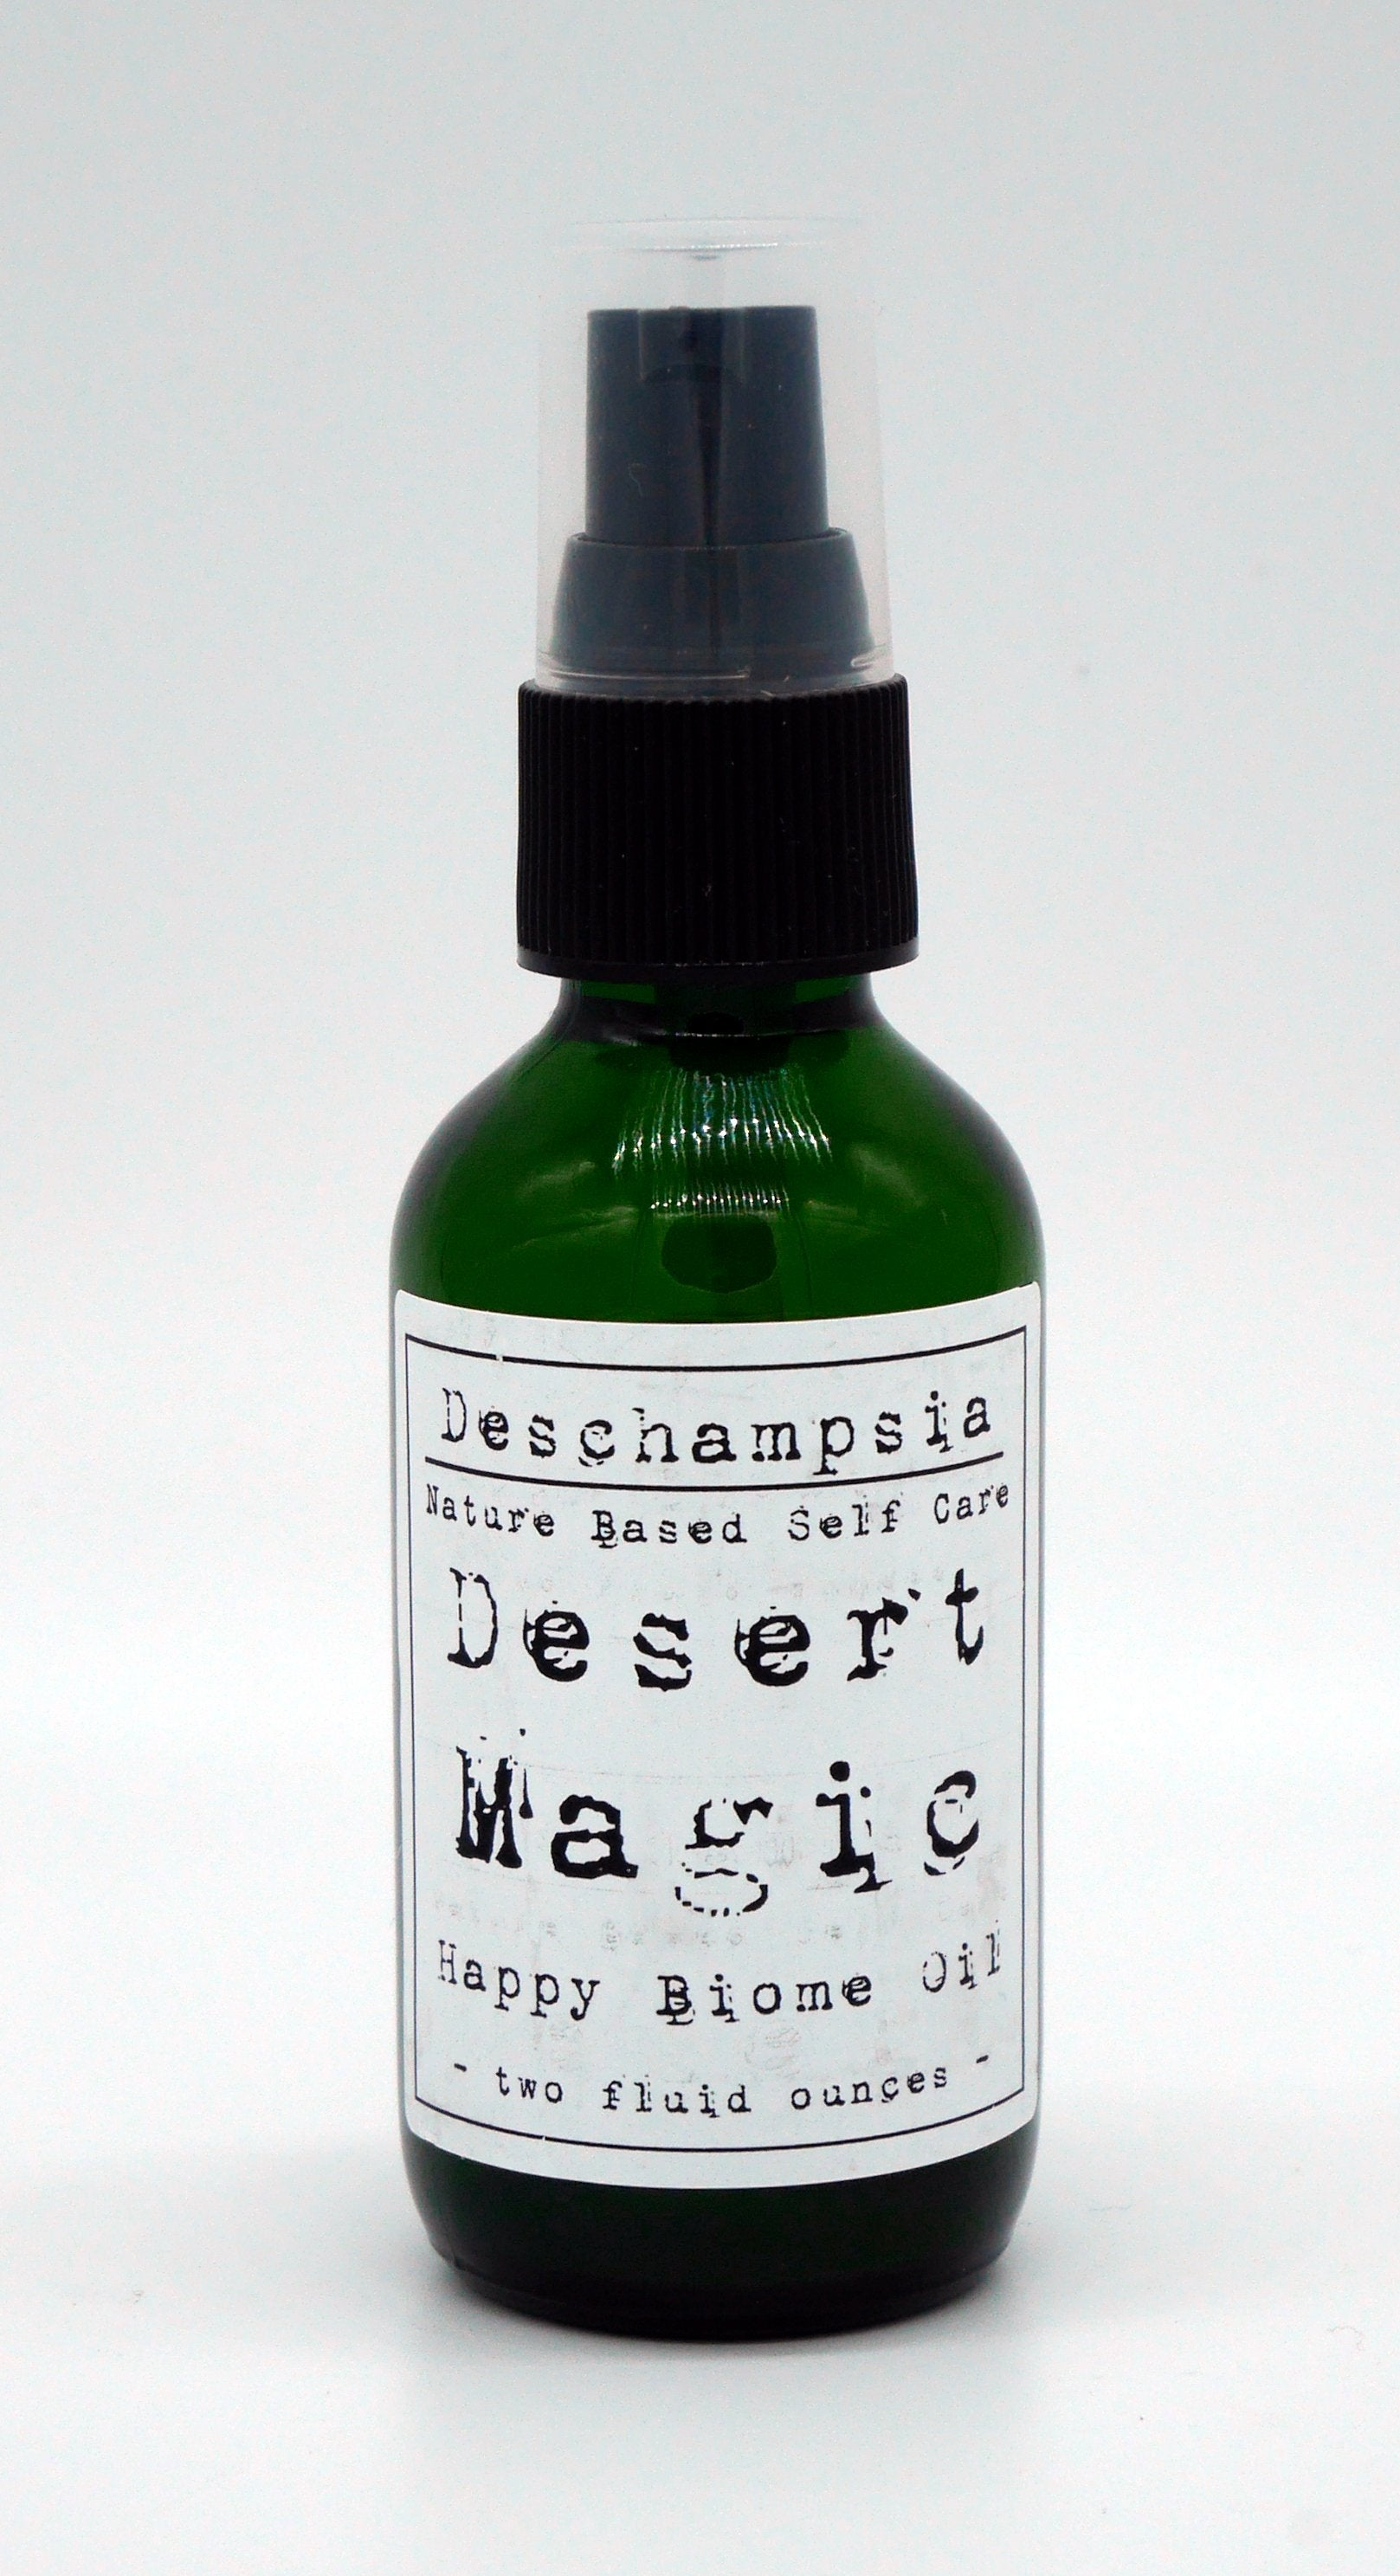 Desert Magic Body Oil *Almost Gone! - Deschampsia